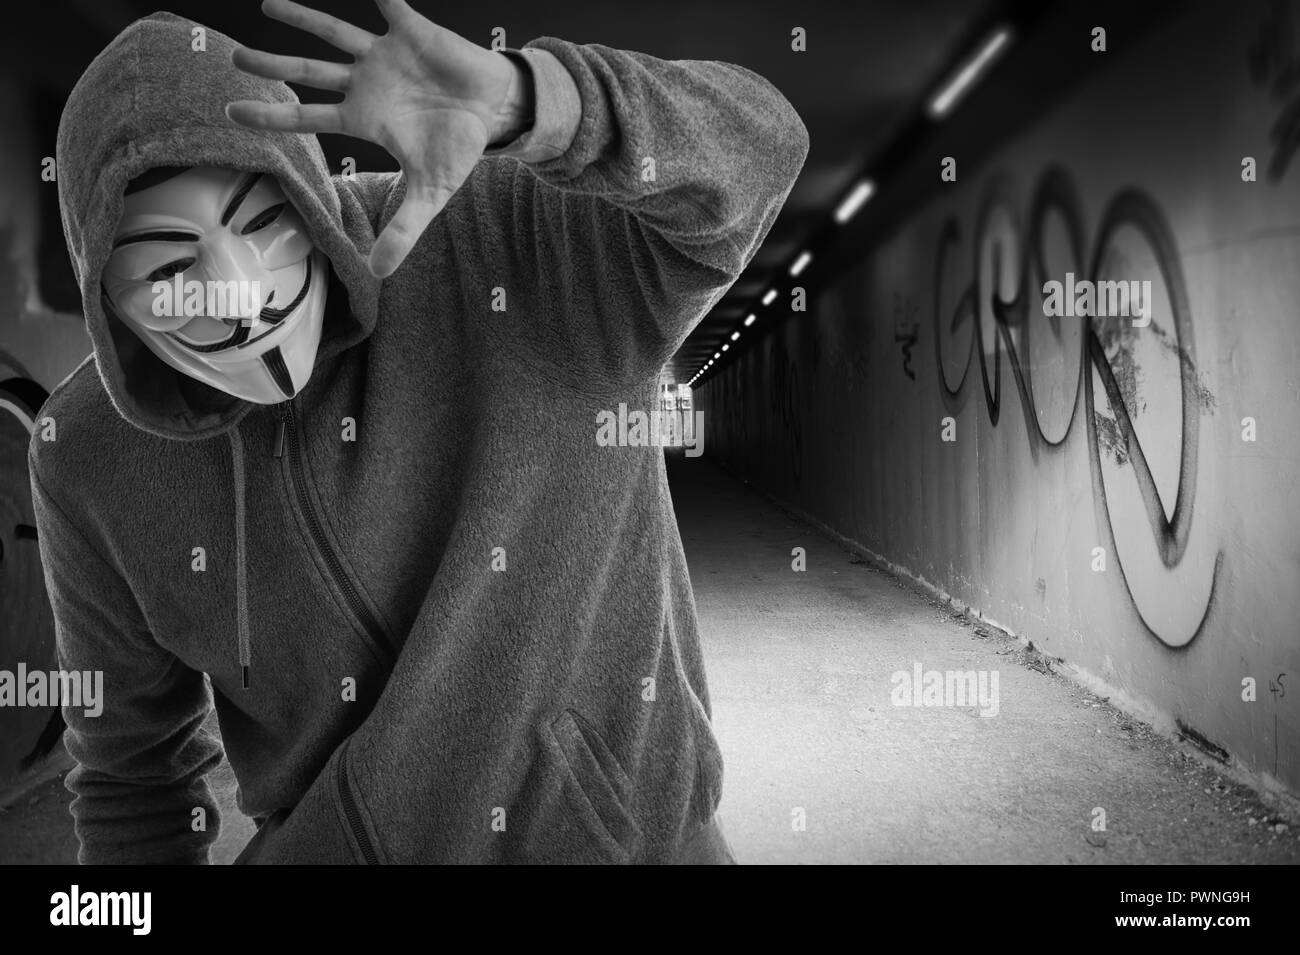 man wearing a Guy Fawkes mask at the entrance to a tummel, anonymous. - Stock Image